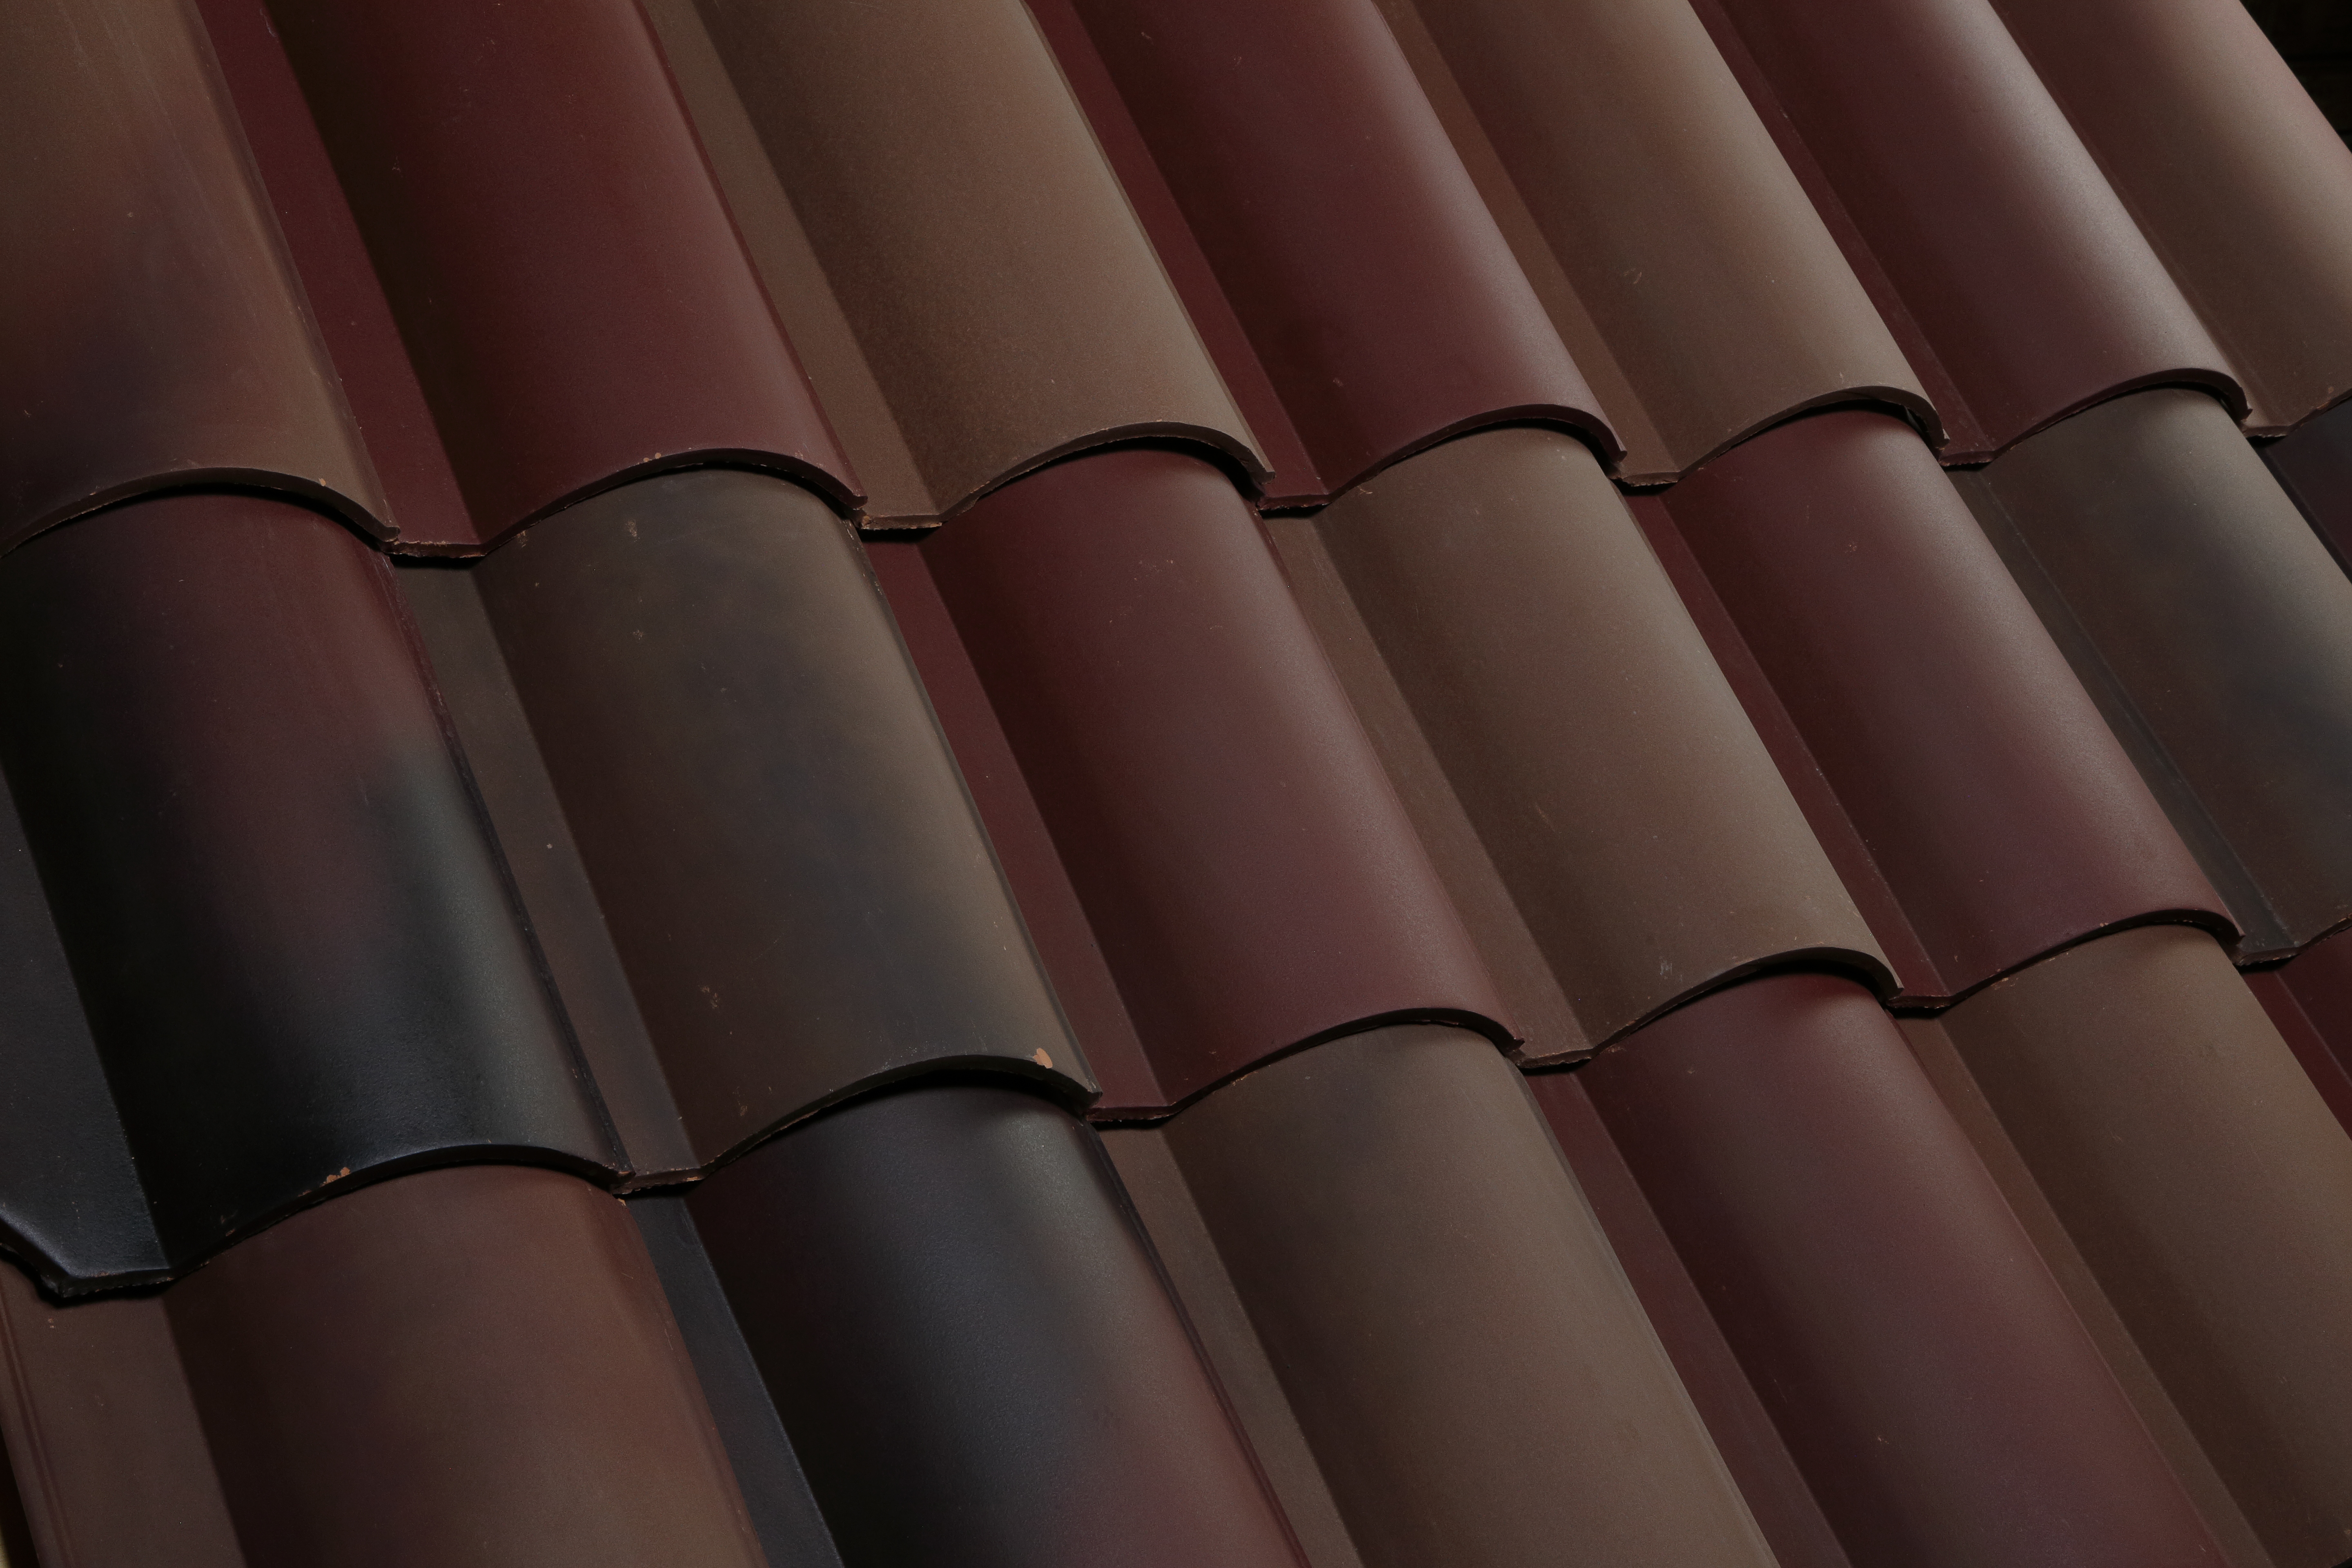 Buy clay roof tiles claymex clay roof tile for sale at claymex dailygadgetfo Image collections